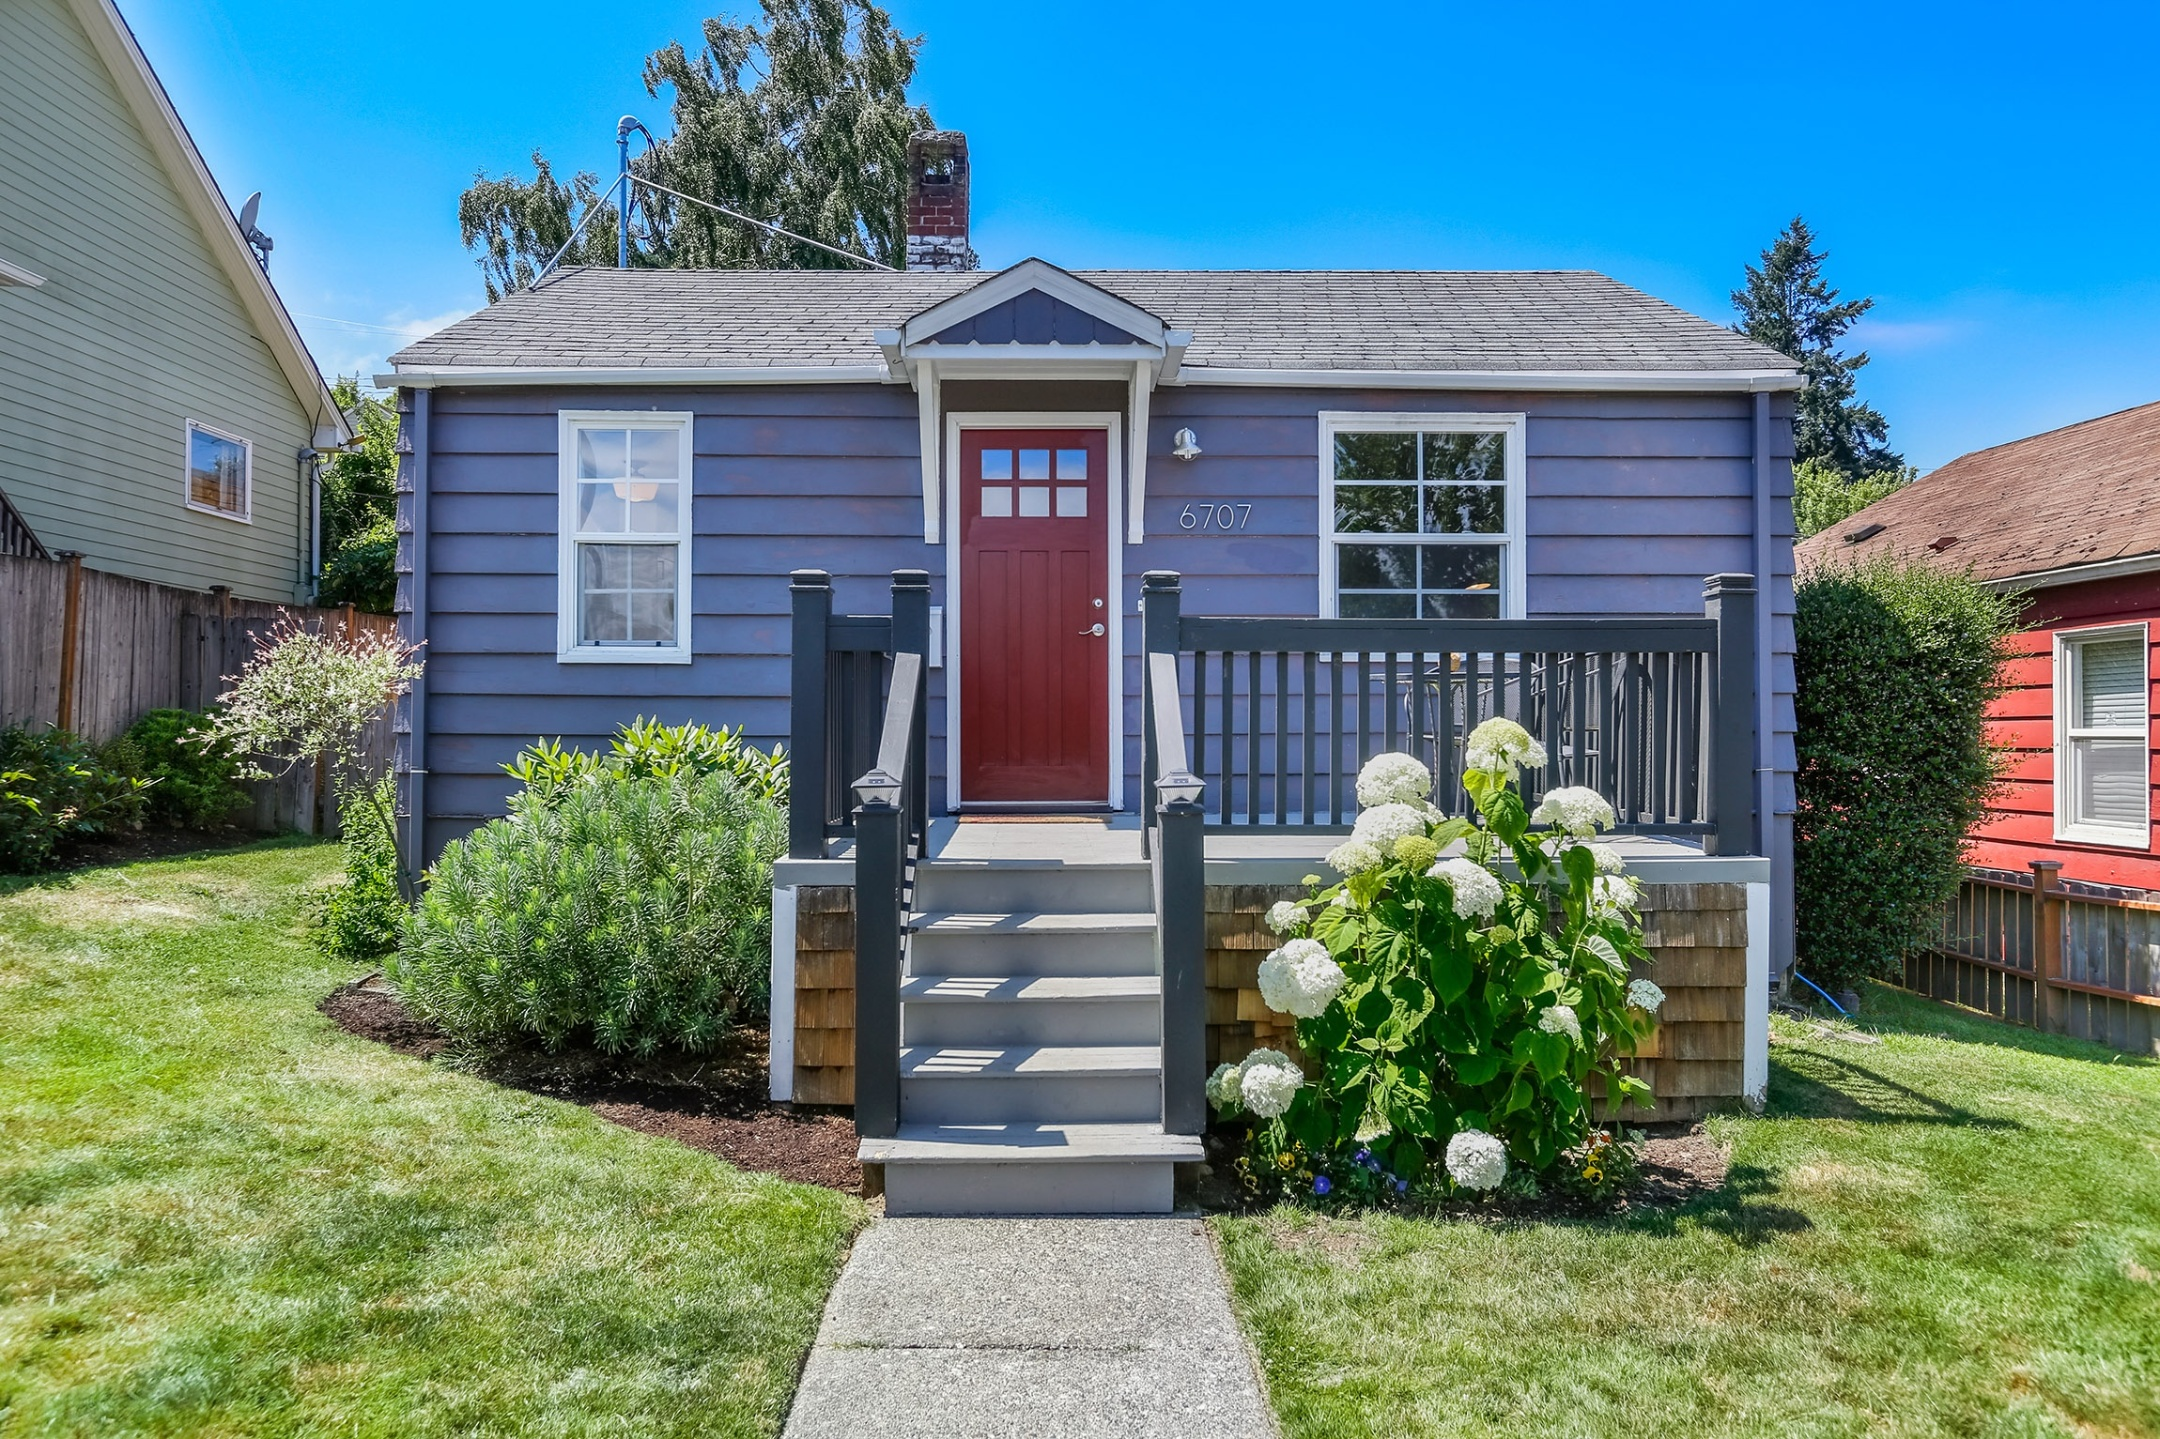 6707 34th Ave SW Seattle, WA 98126